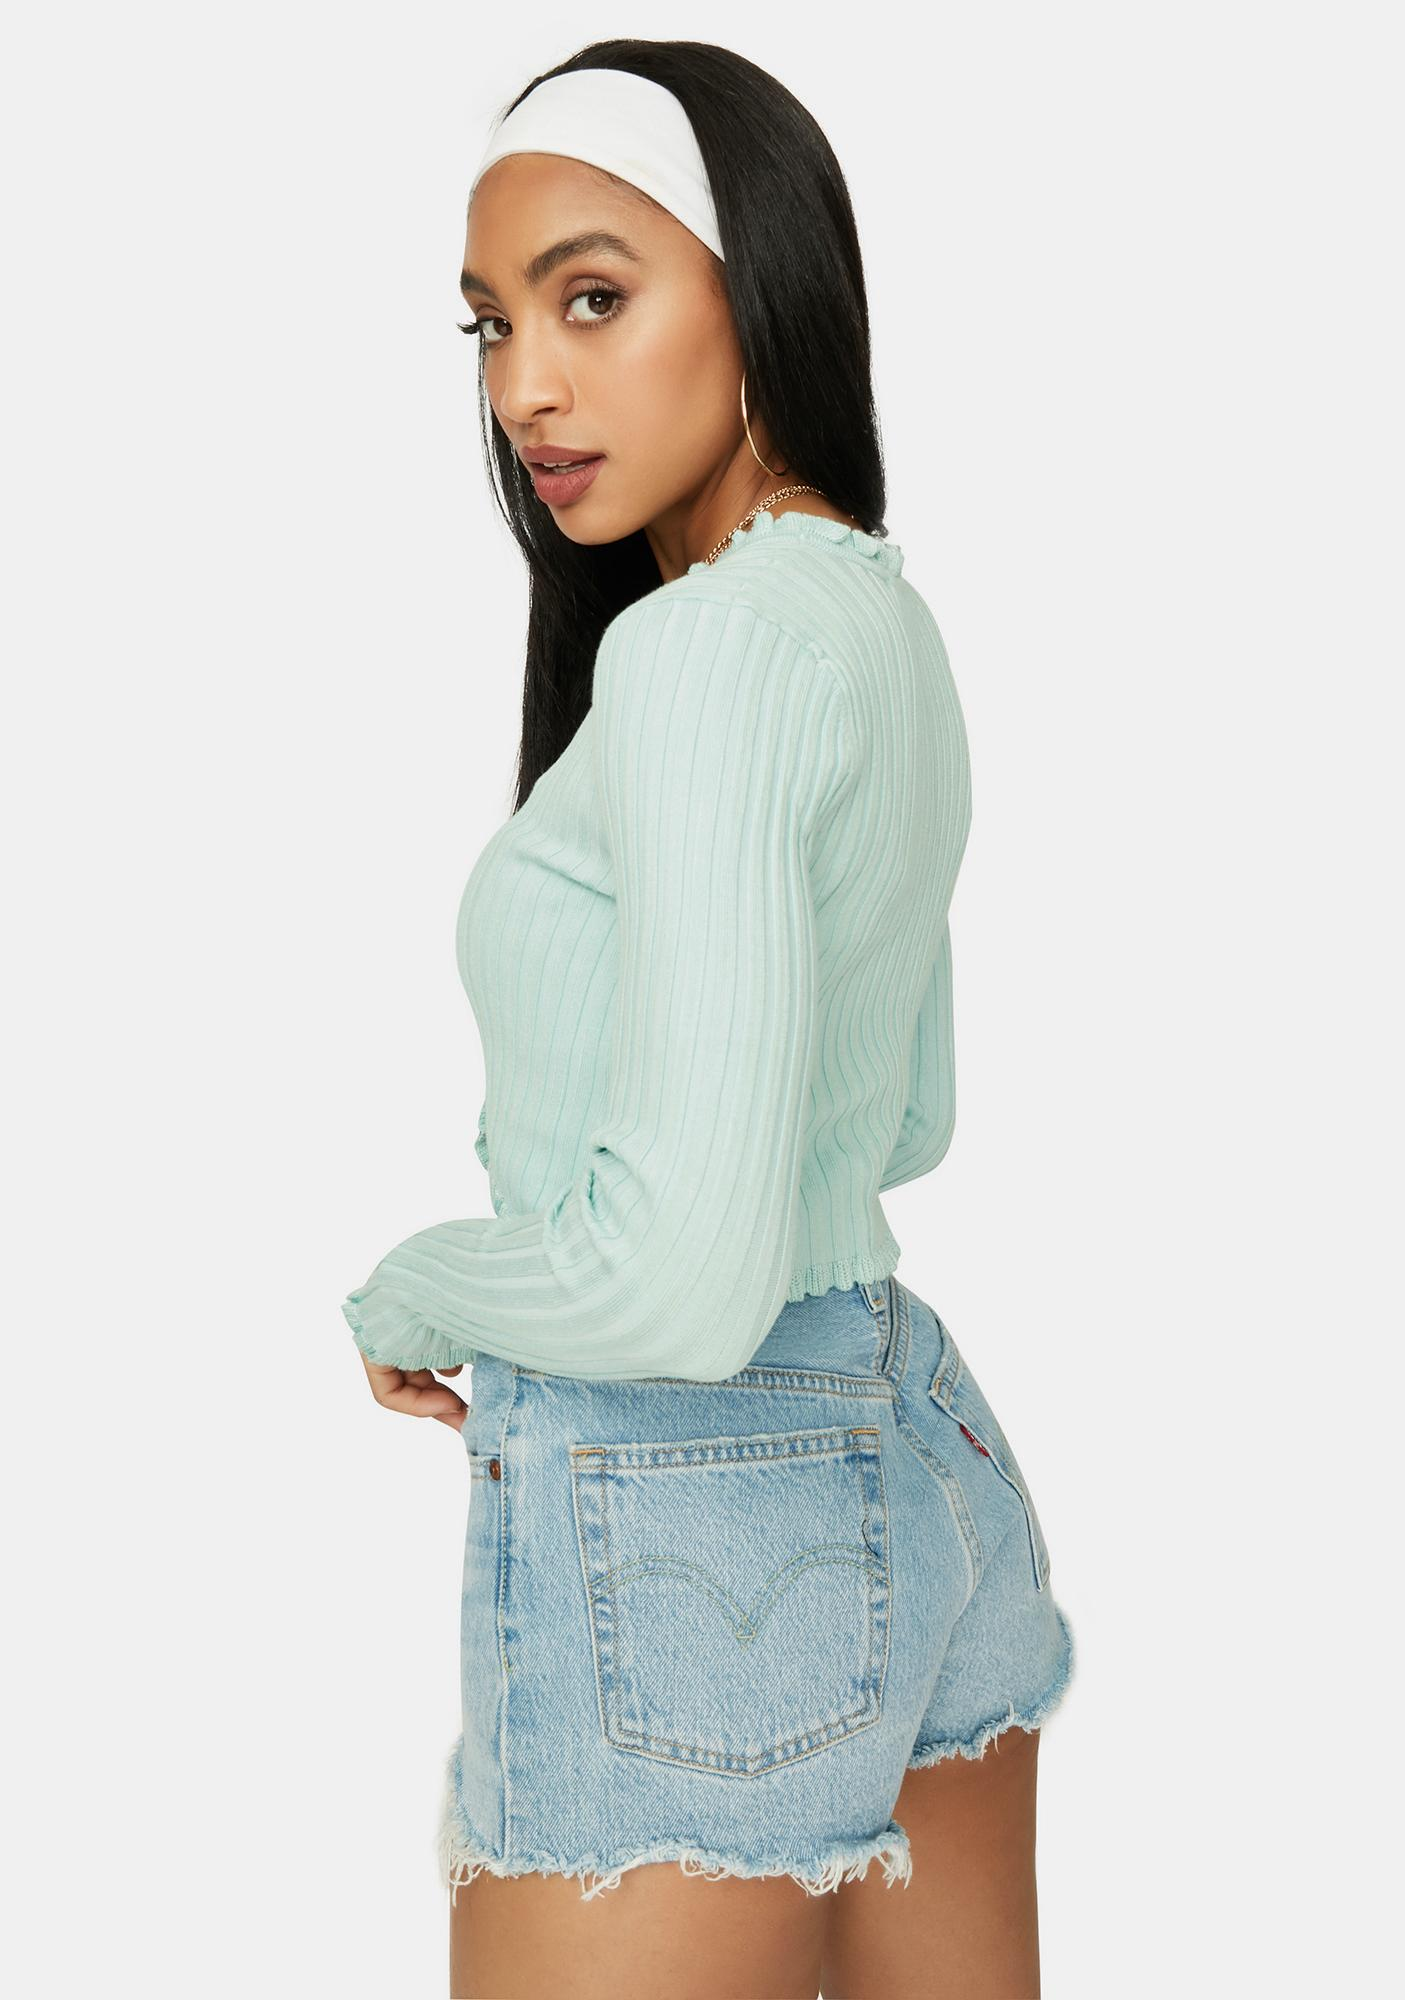 Mint Clique On Speed Dial Cropped Sweater